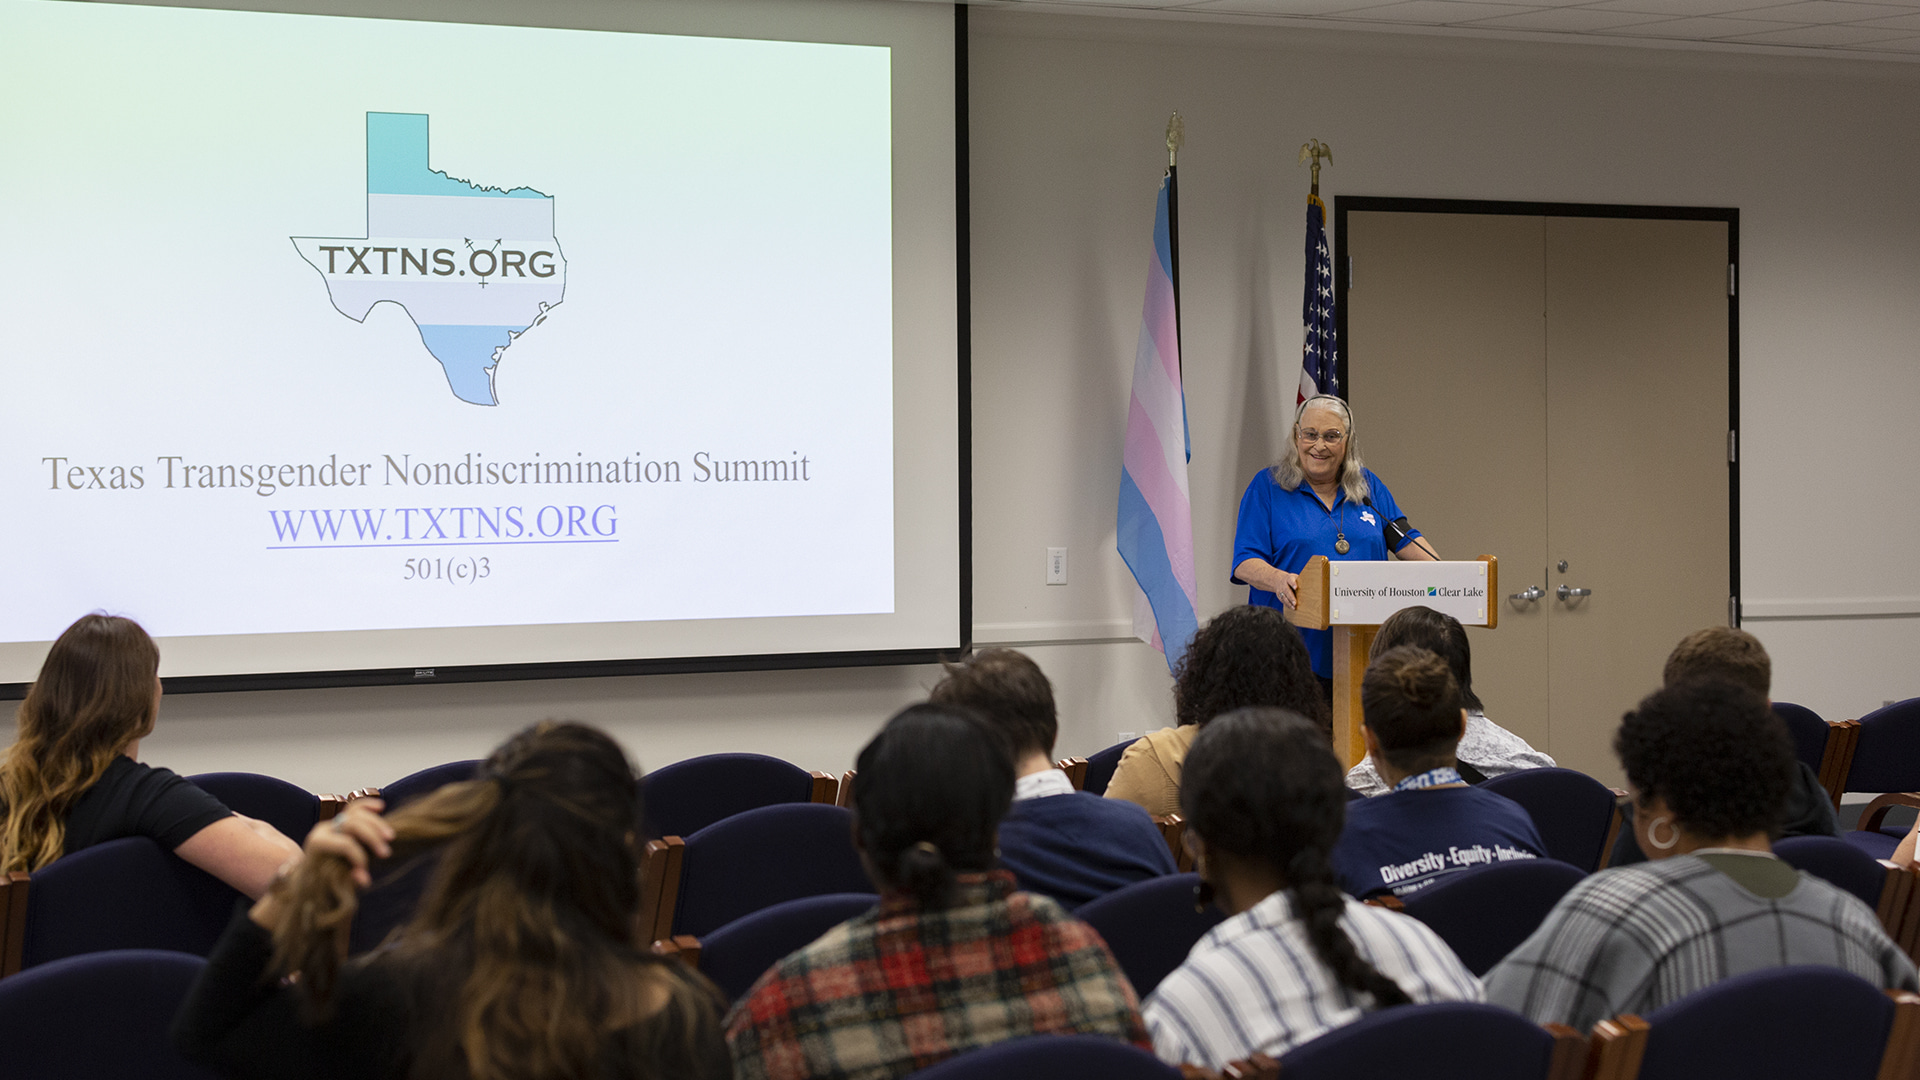 Alum returns to campus to lead support, advocacy for Texas transgender community